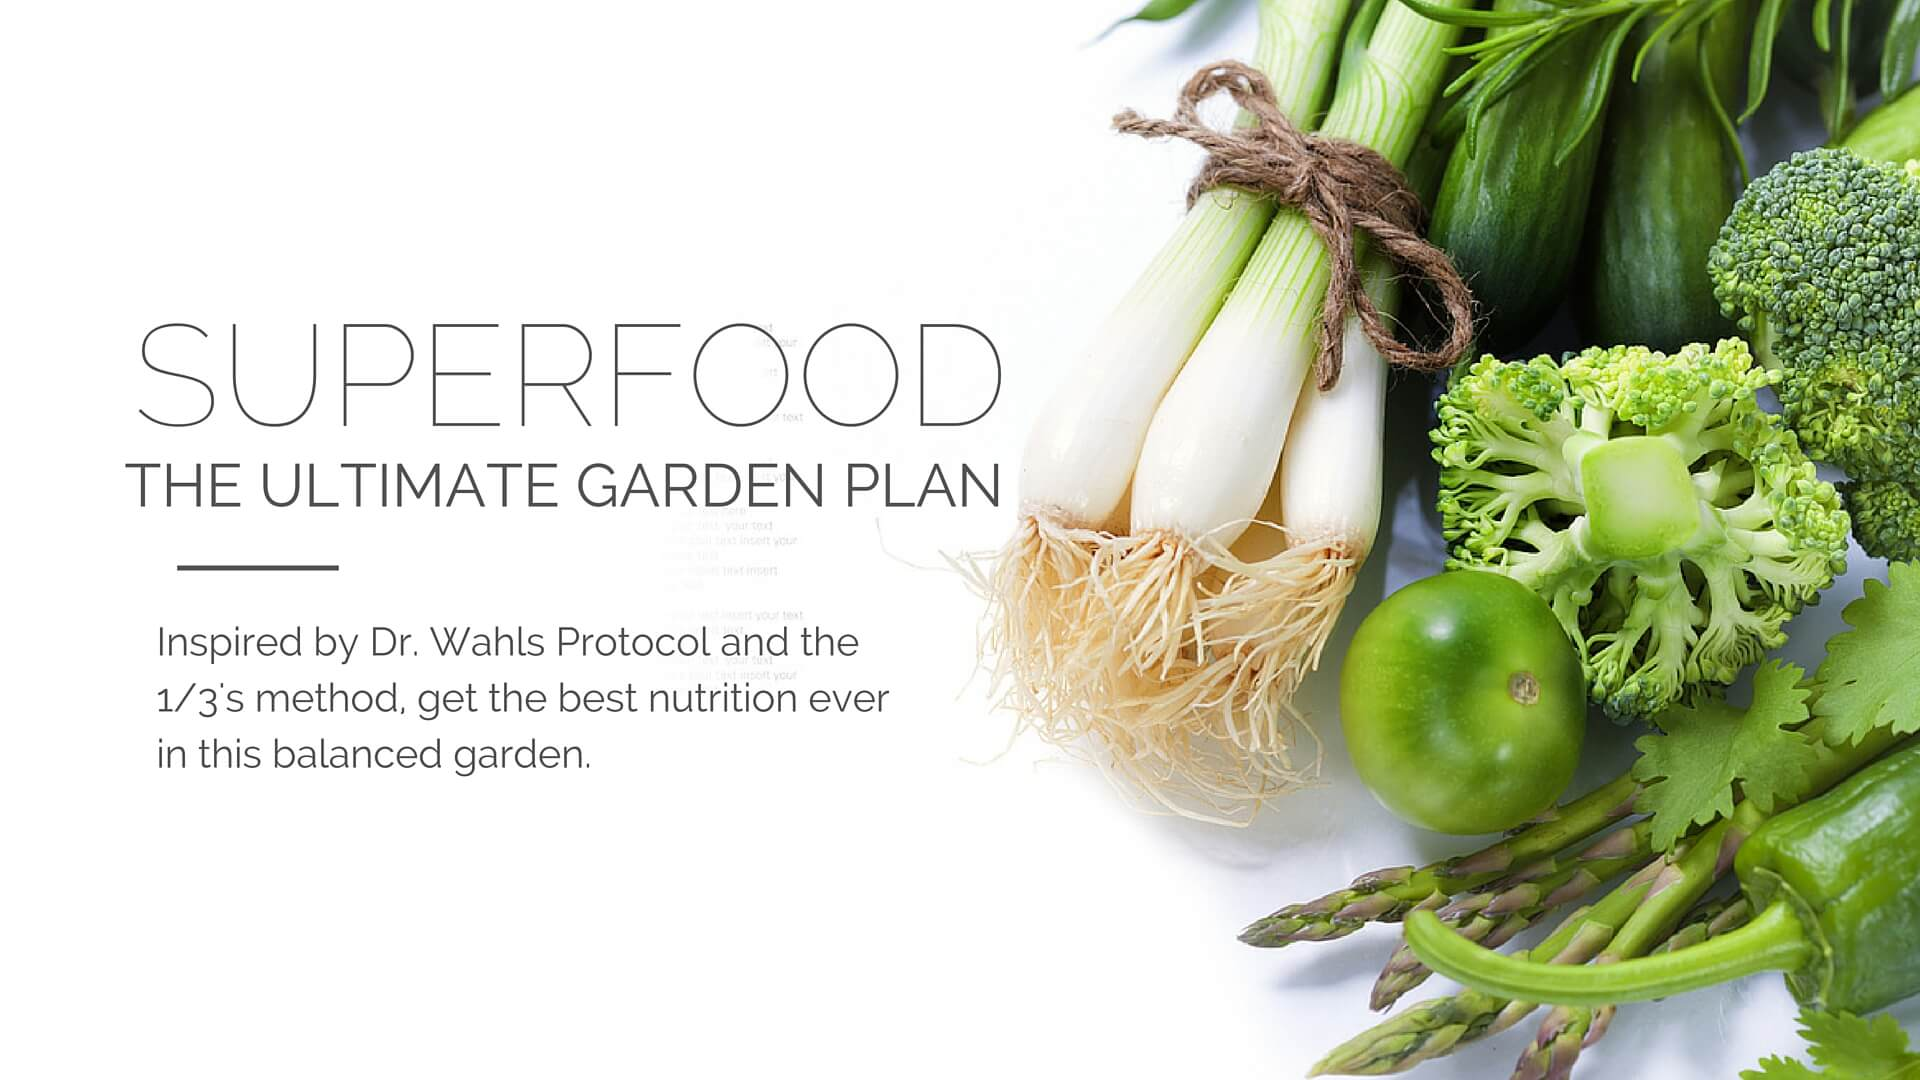 Superfood garden plan